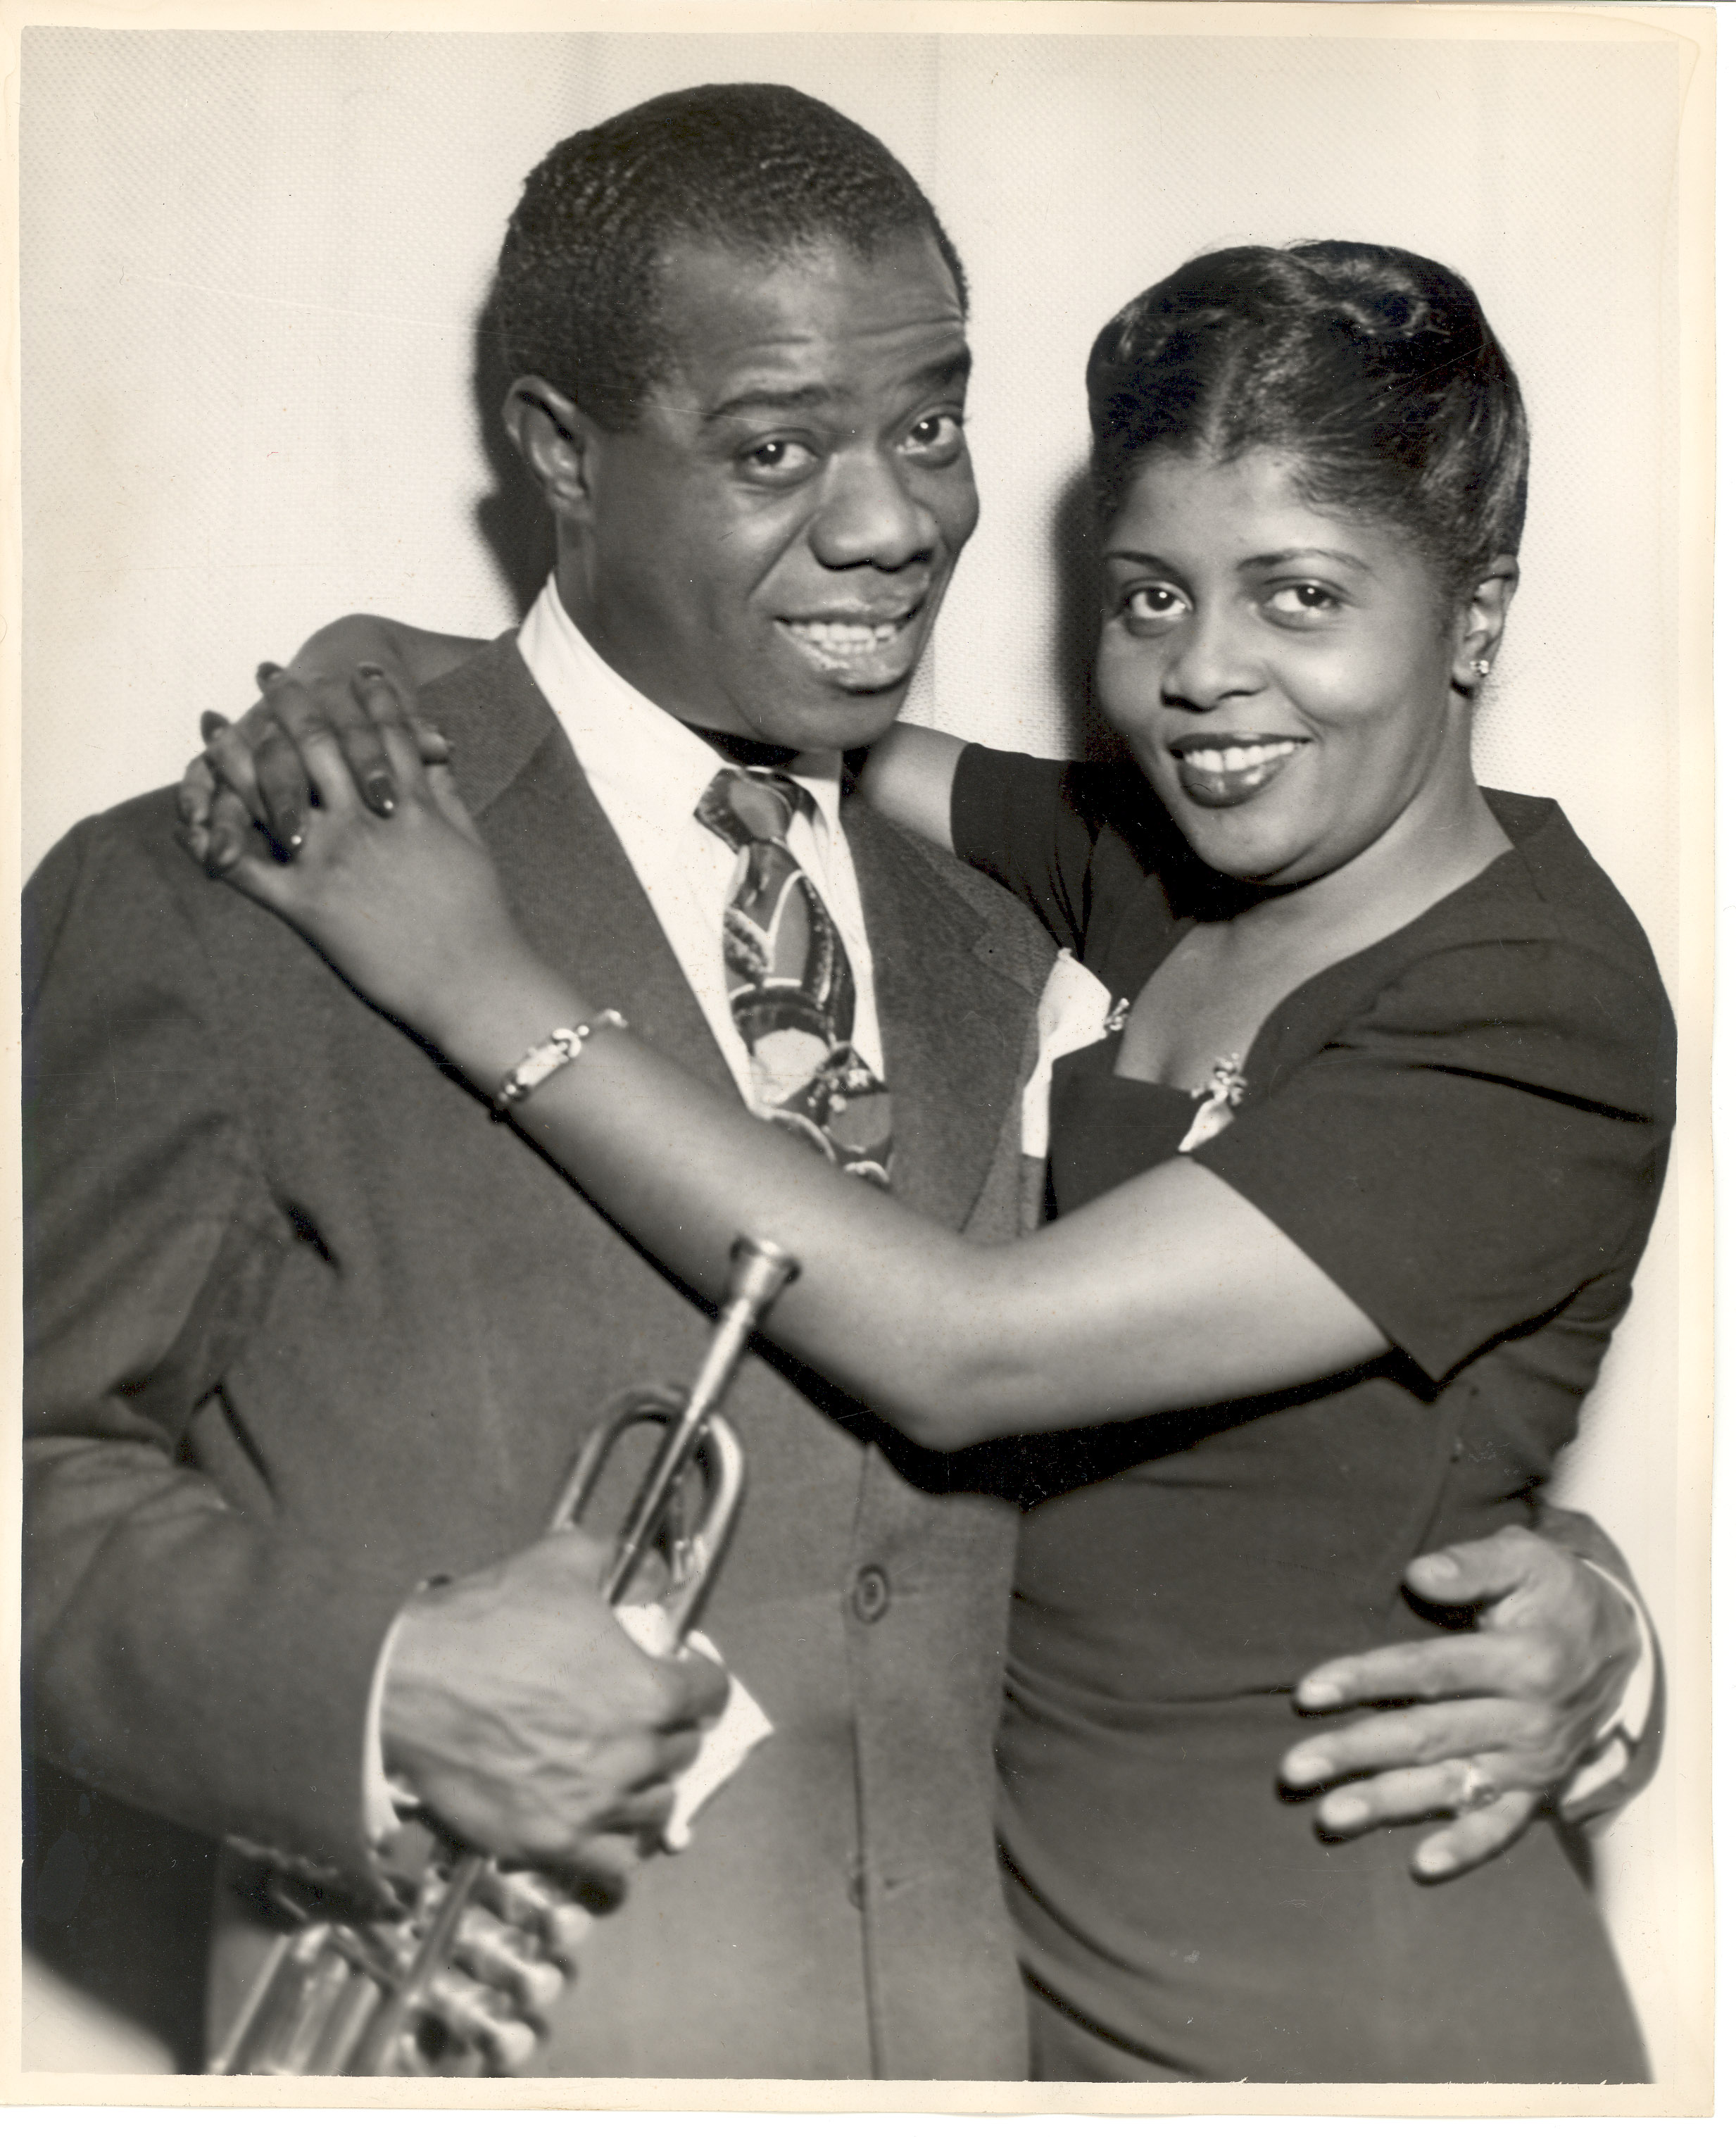 Louis and wife Lucille, who was fined for possessing marijuana